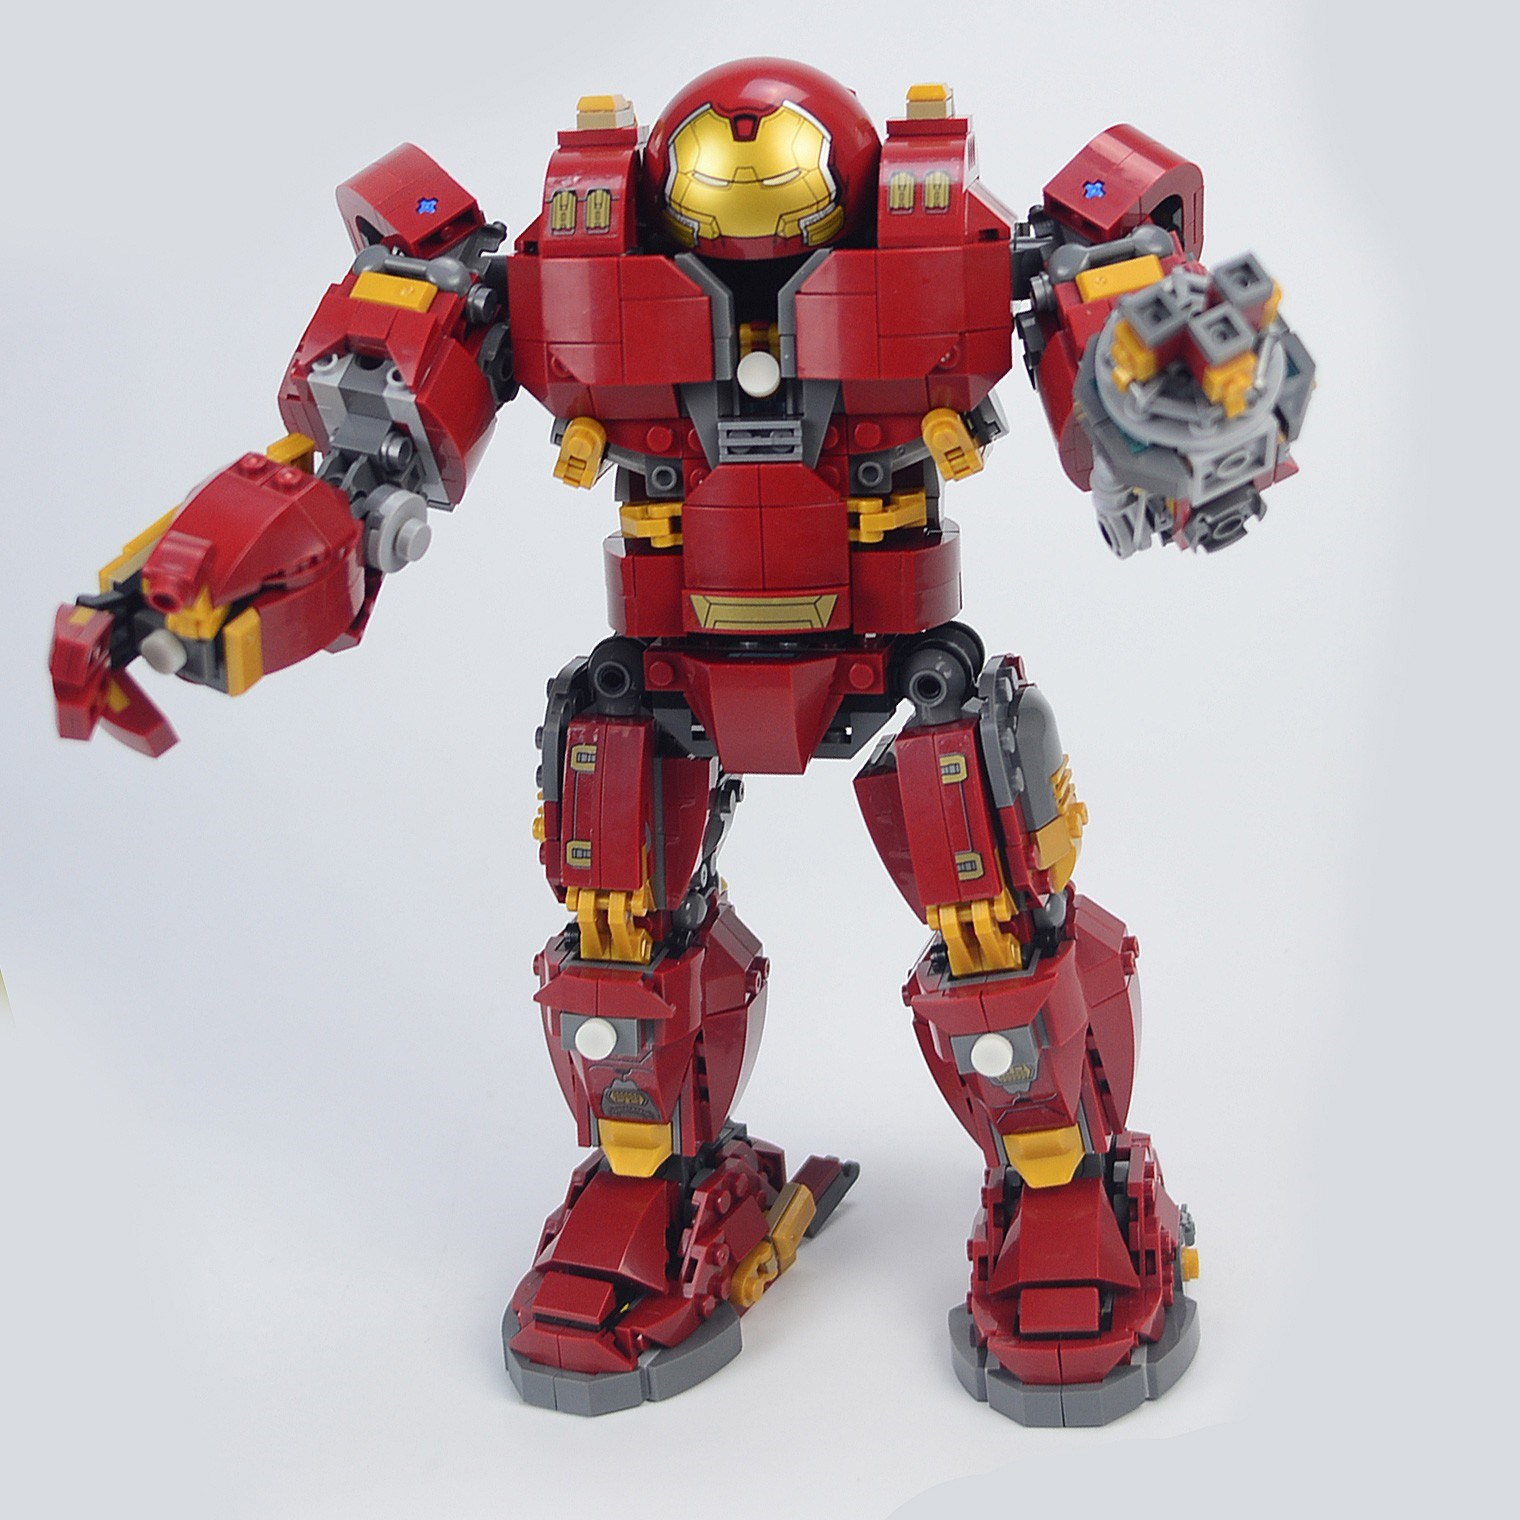 CUSTOM 07101 Building Blocks Toys The Hulkbuster: Ultron Edition Building Brick Sets